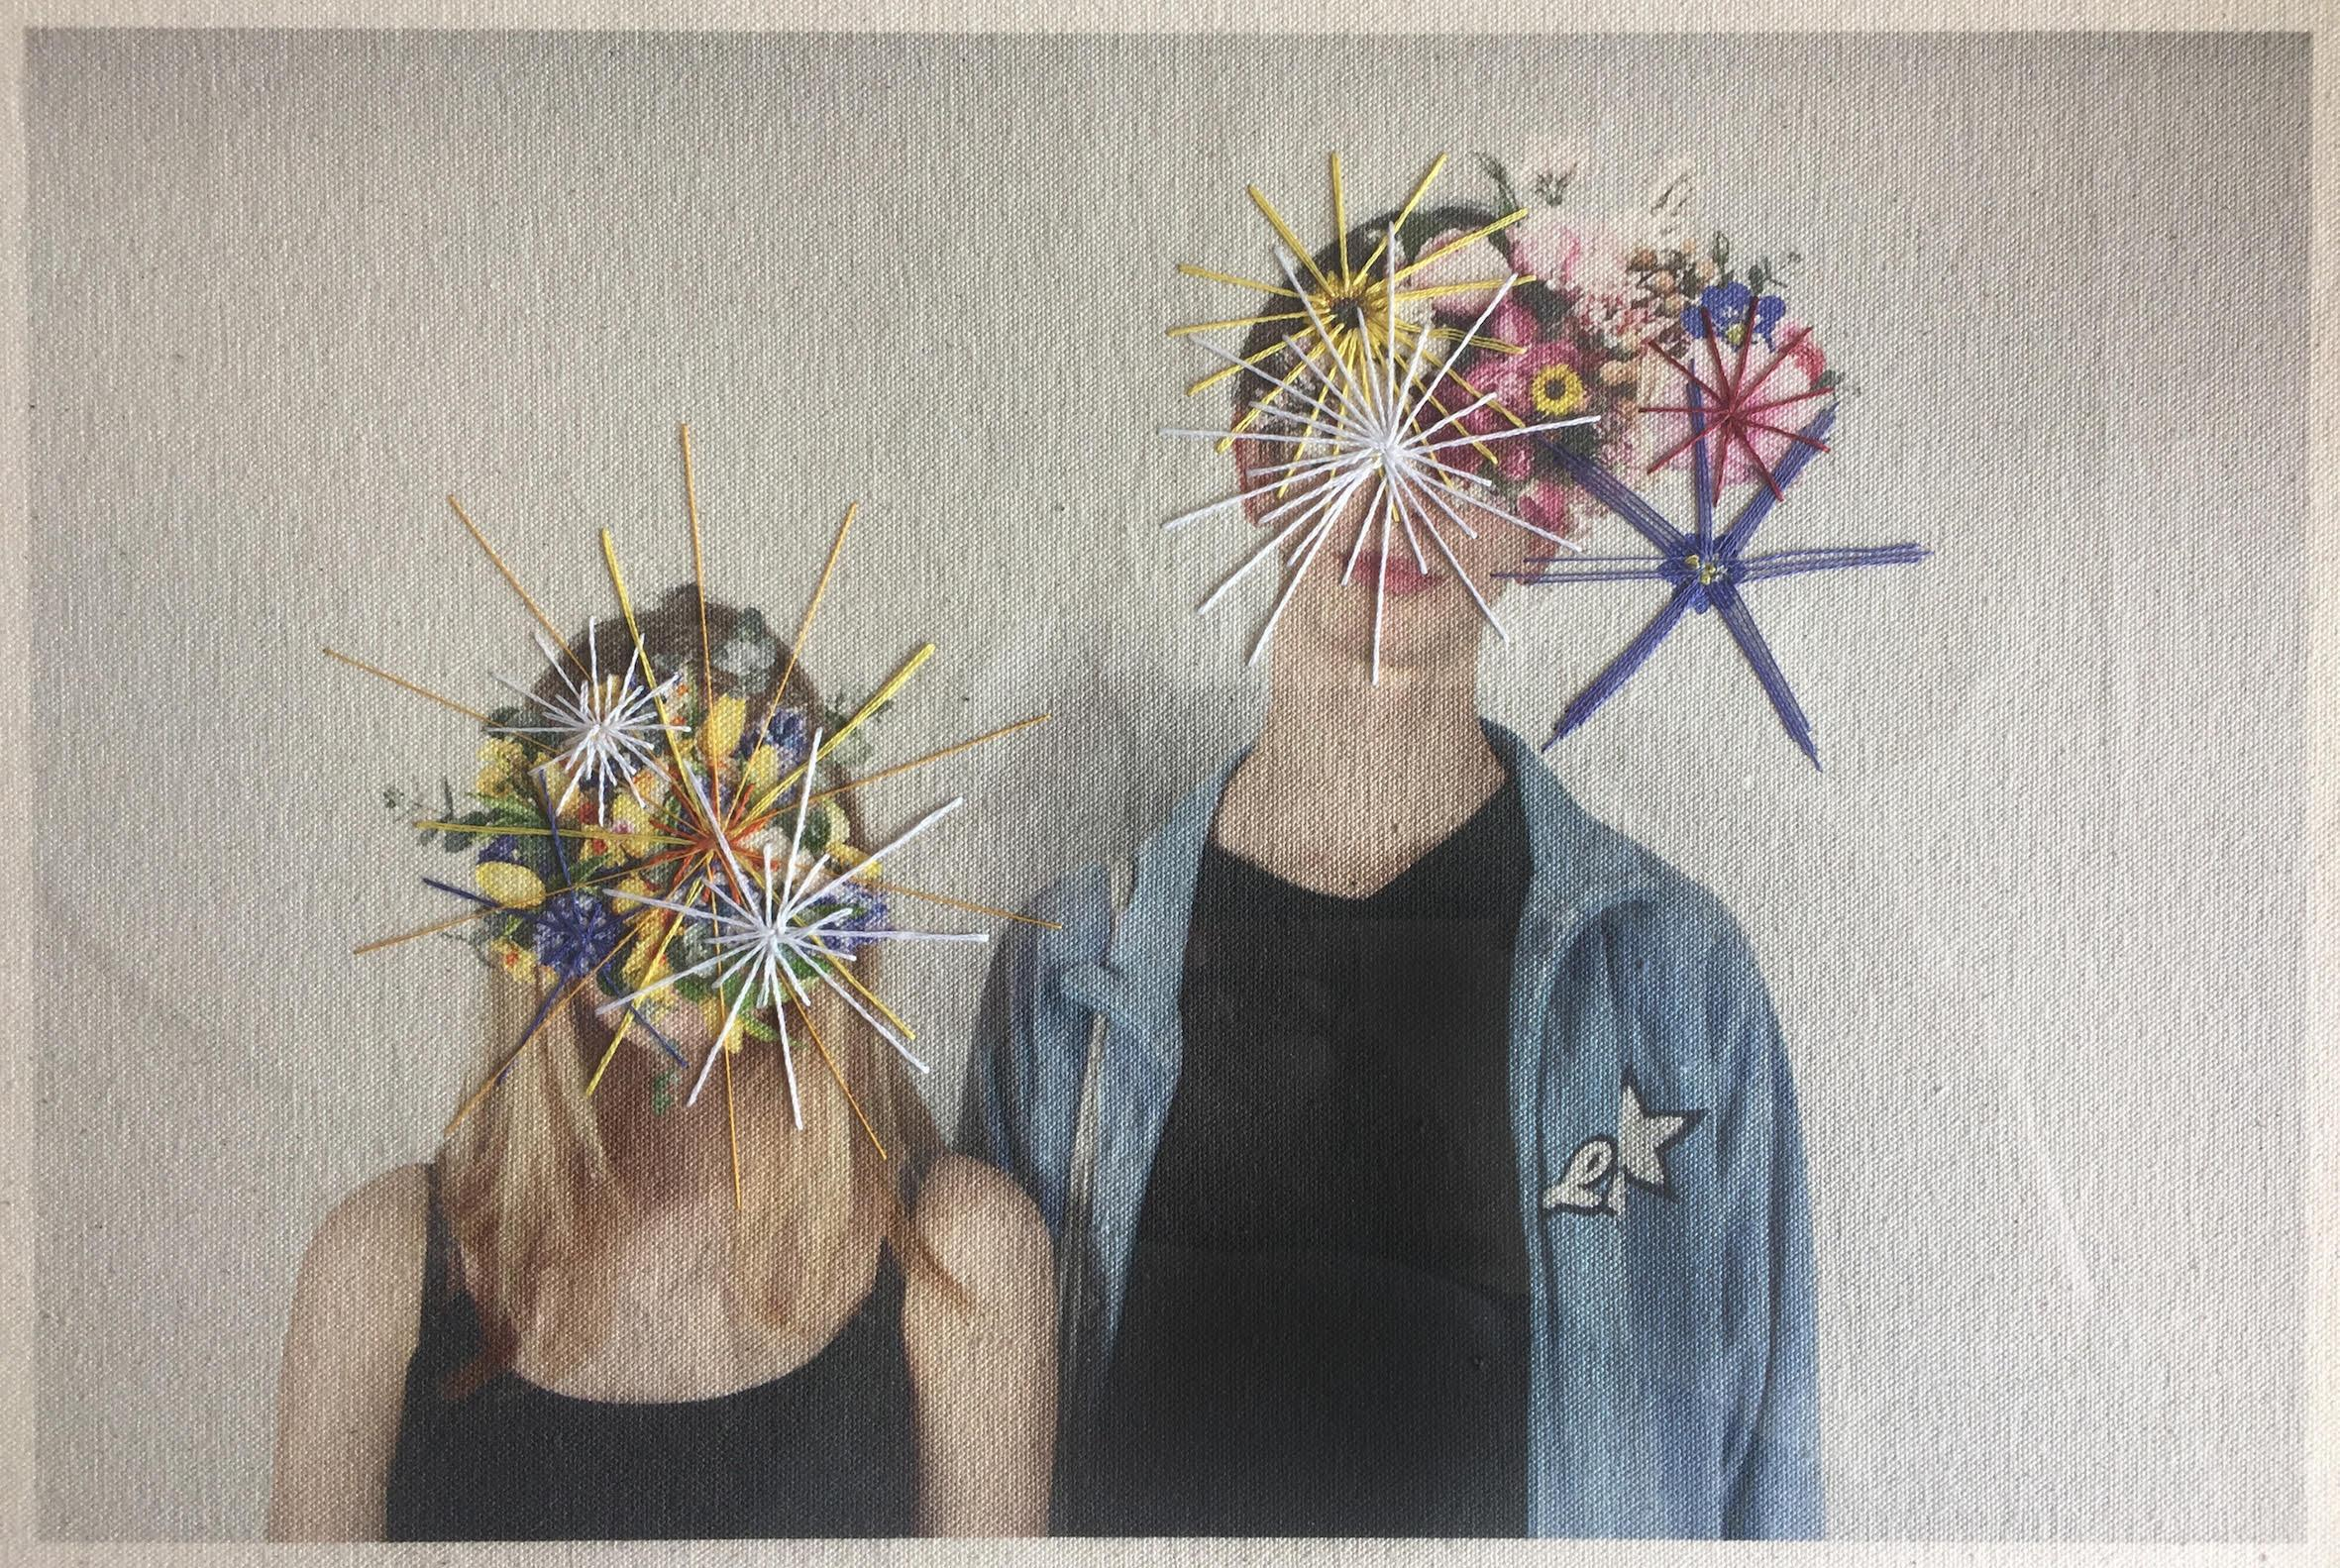 1st The Trusts 13-15 ARt Award_Amelia Blockley_Where the flower blooms